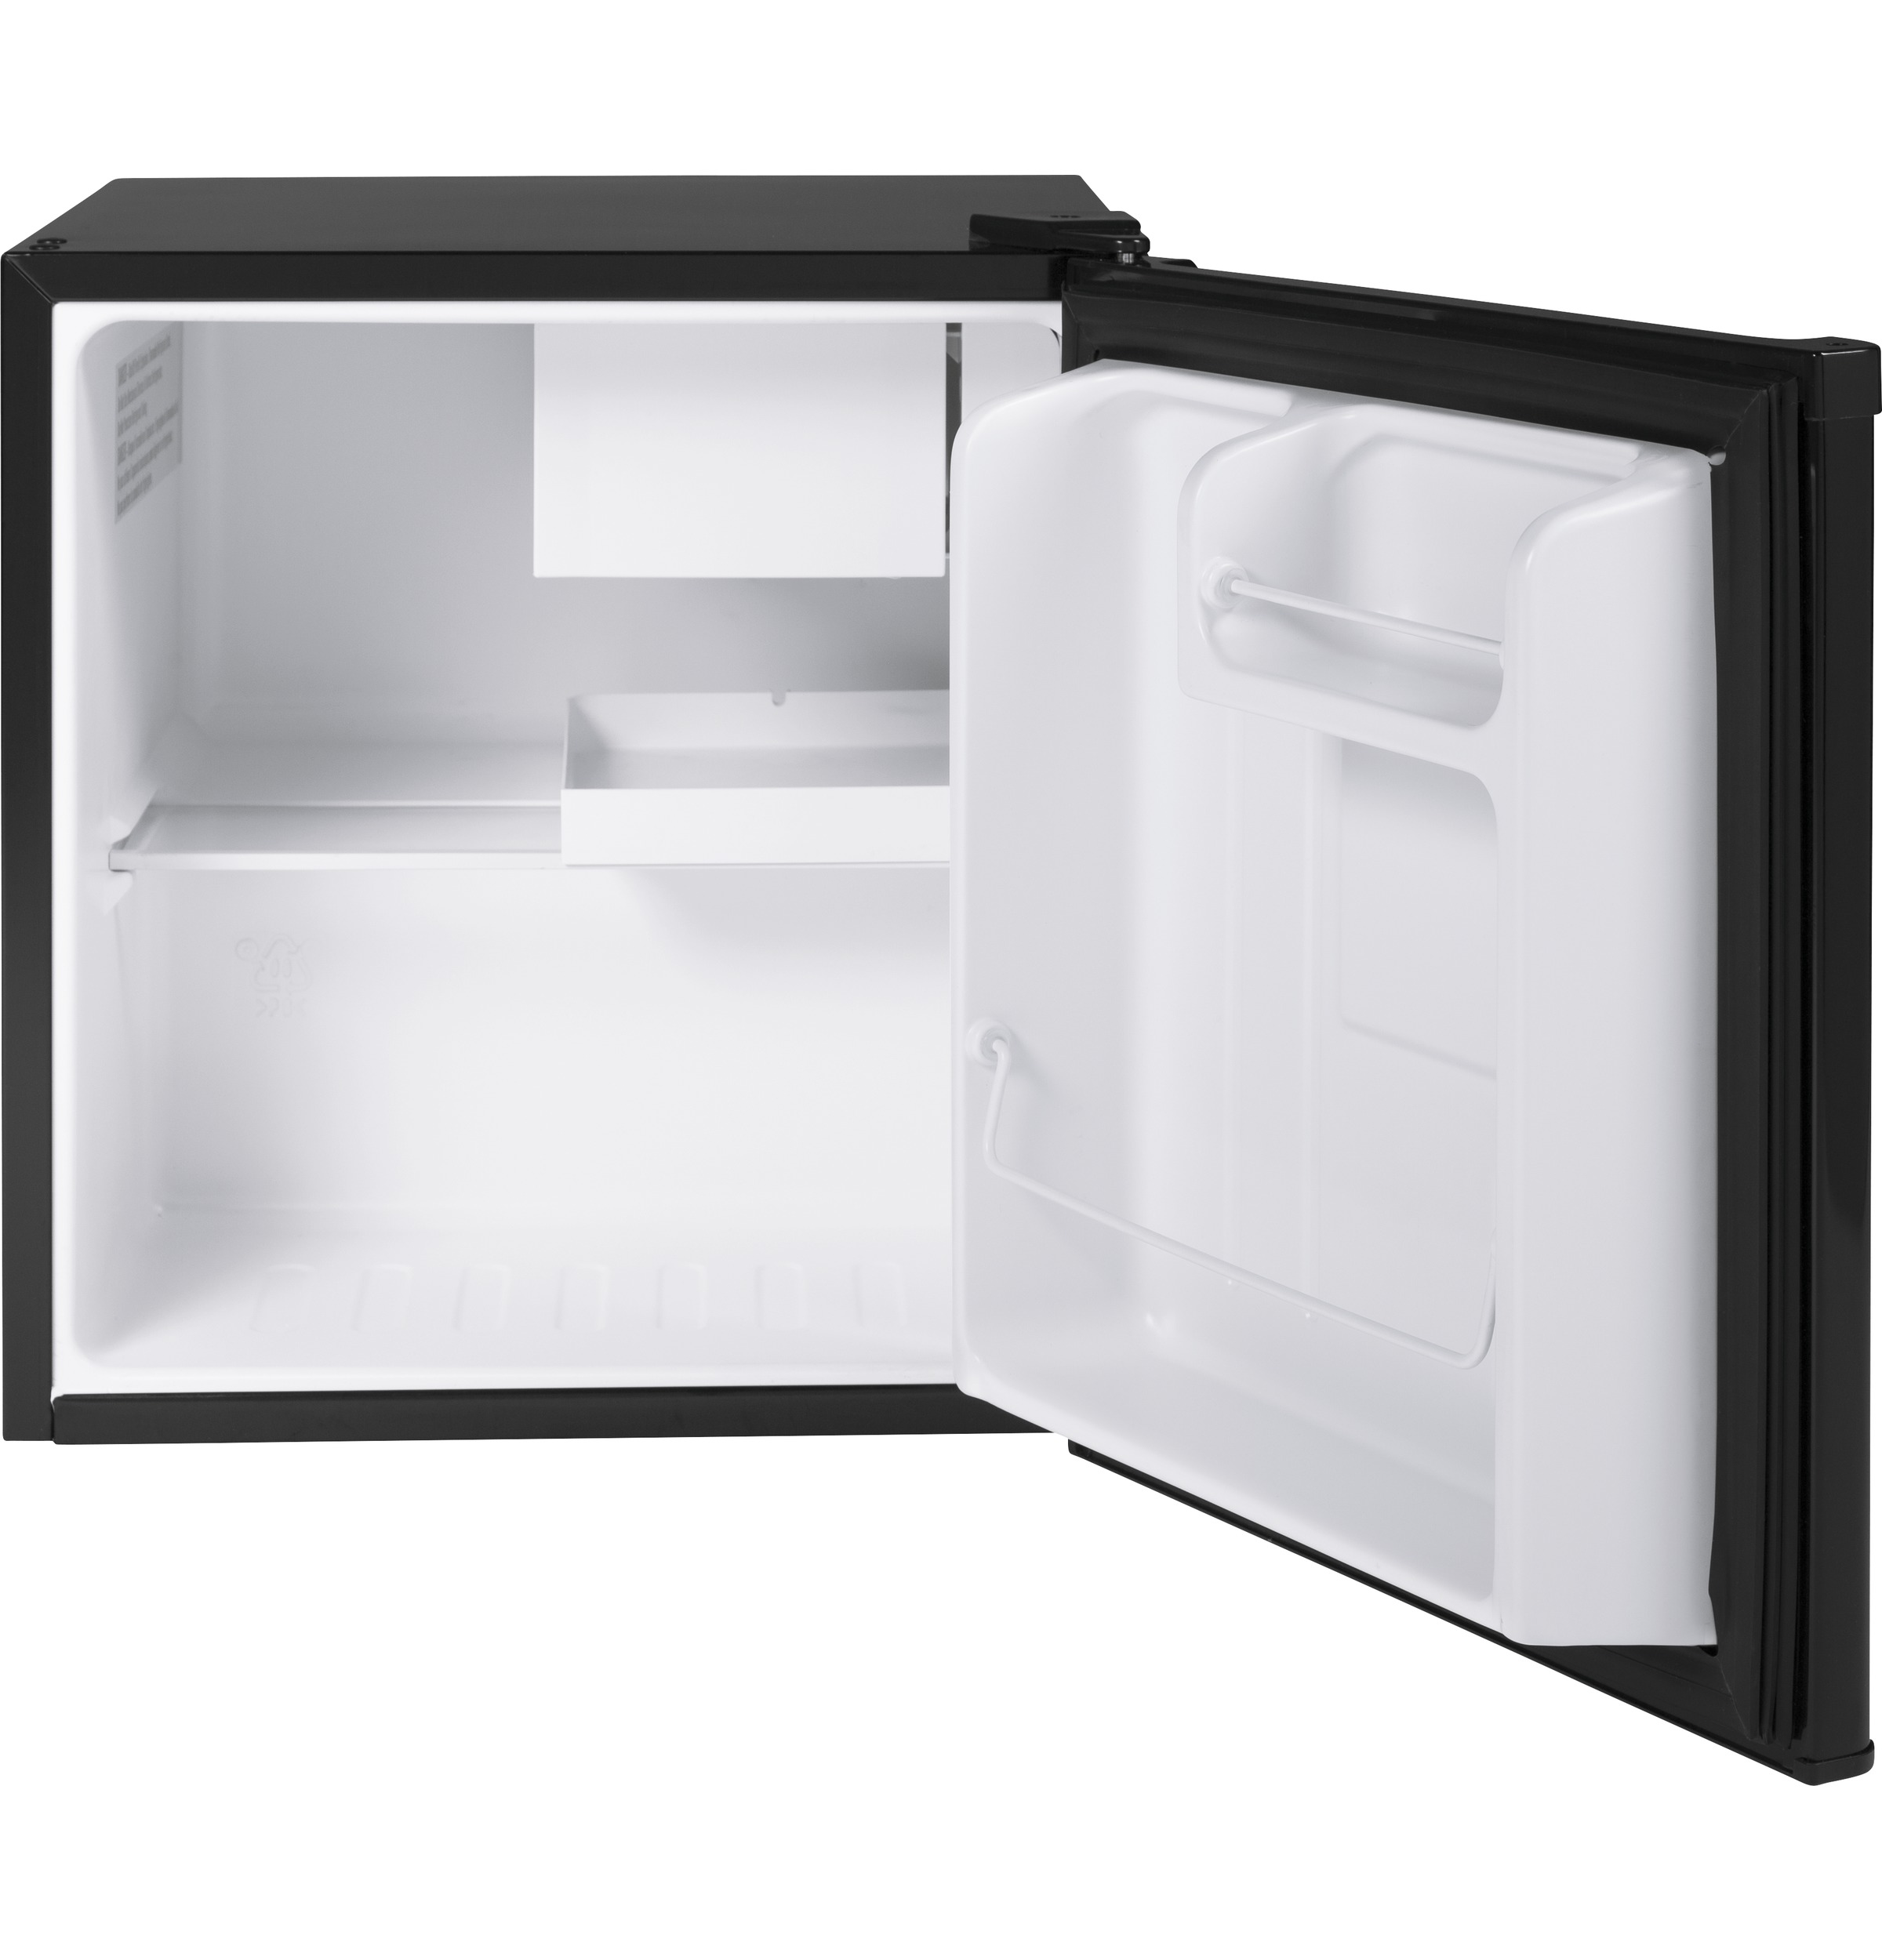 Model: HME02GGMBB | Hotpoint® 1.7 cu. ft. ENERGY STAR® Qualified Compact Refrigerator